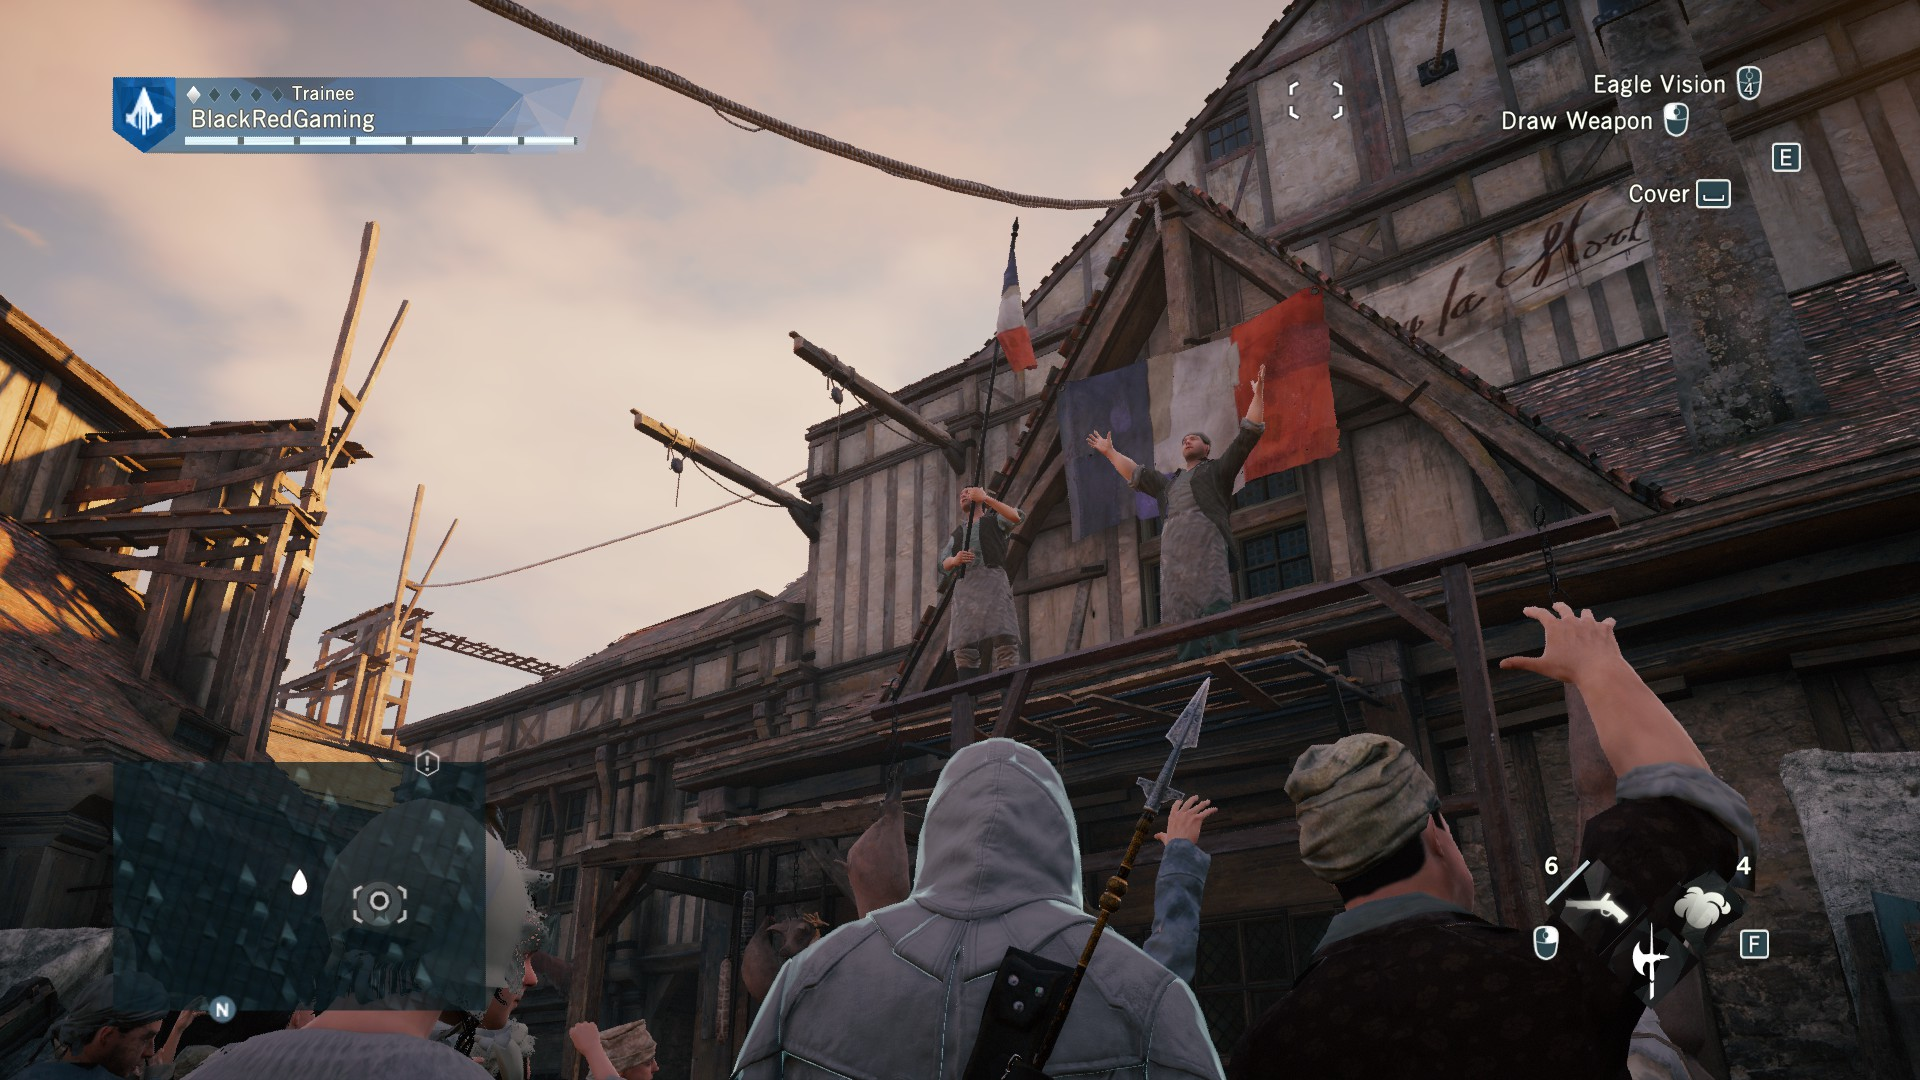 The NPCs in this game actually feel alive.